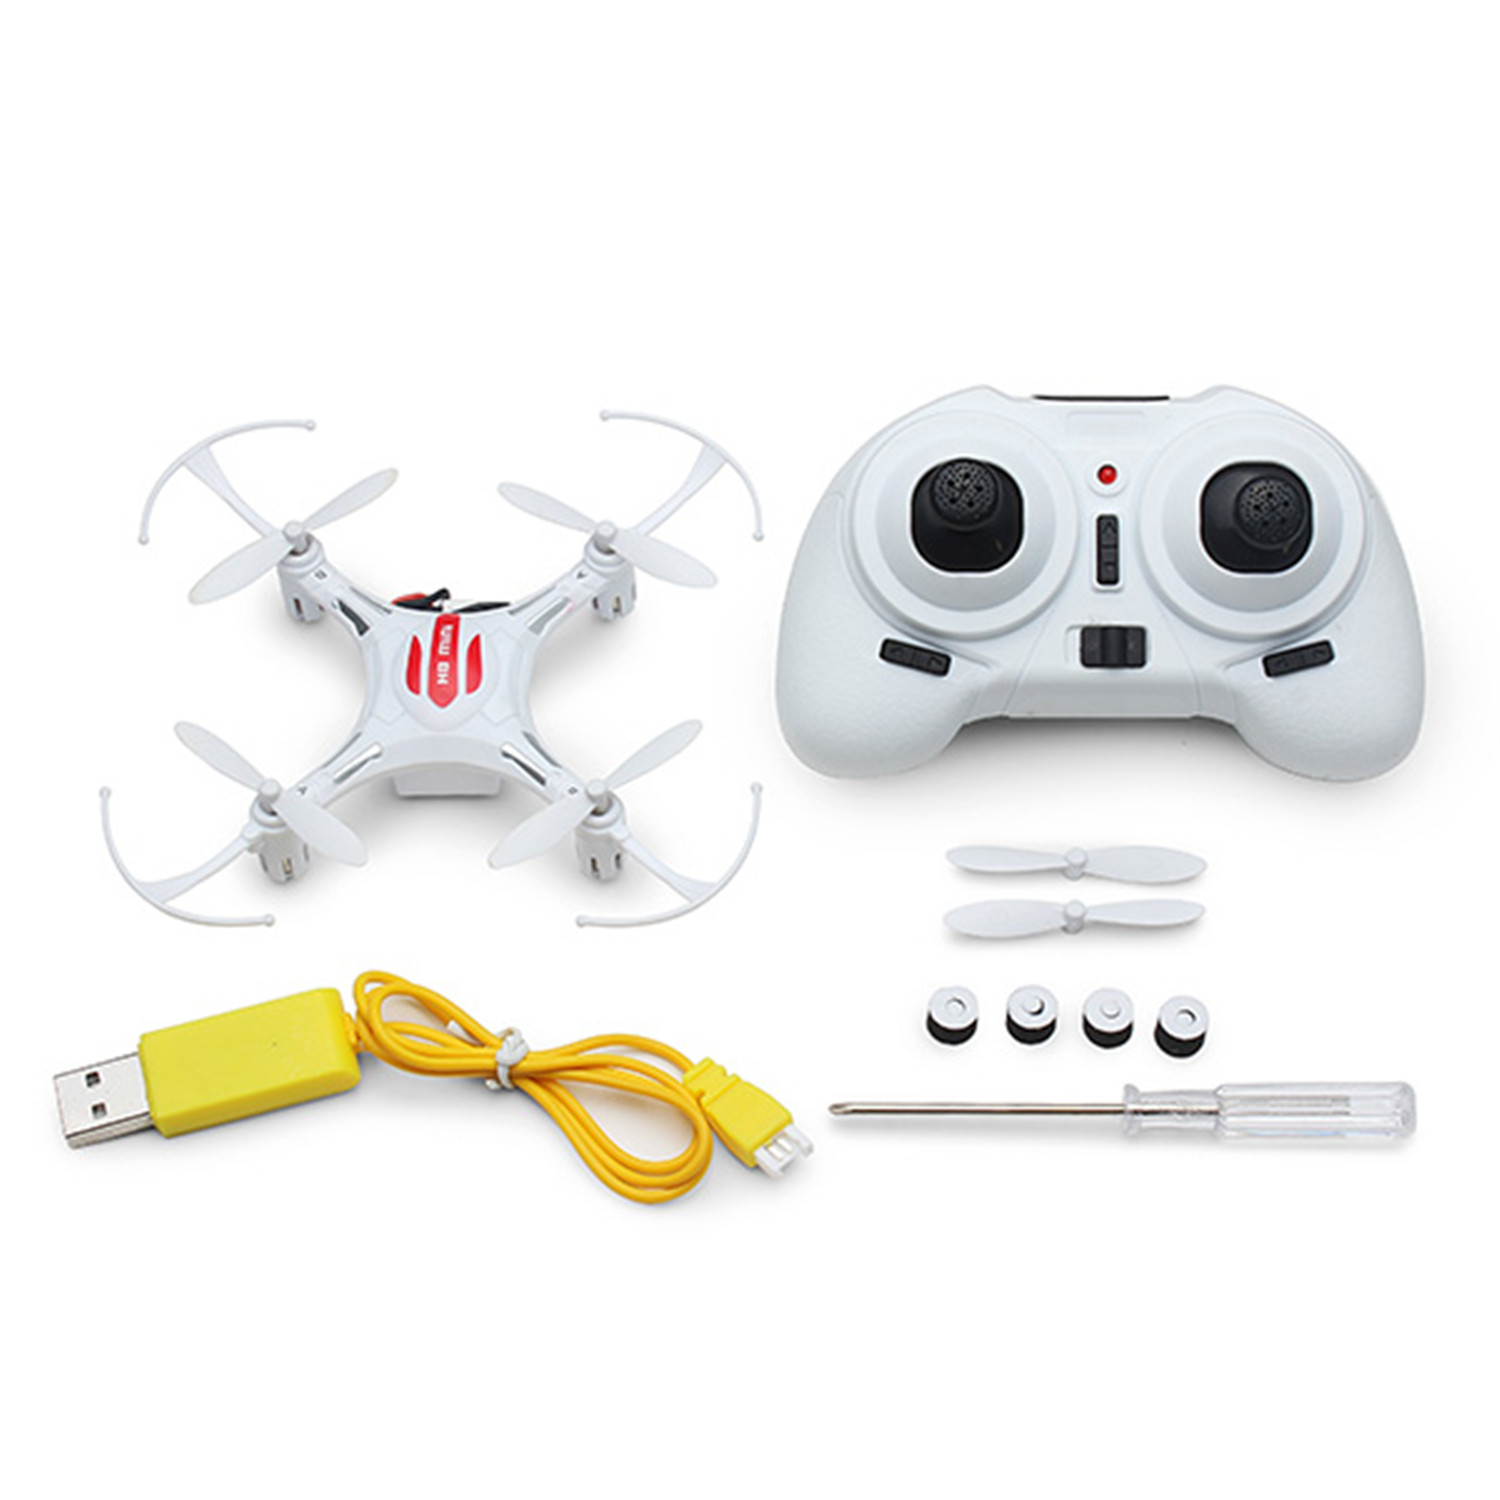 Eachine mini h8 quadcopter